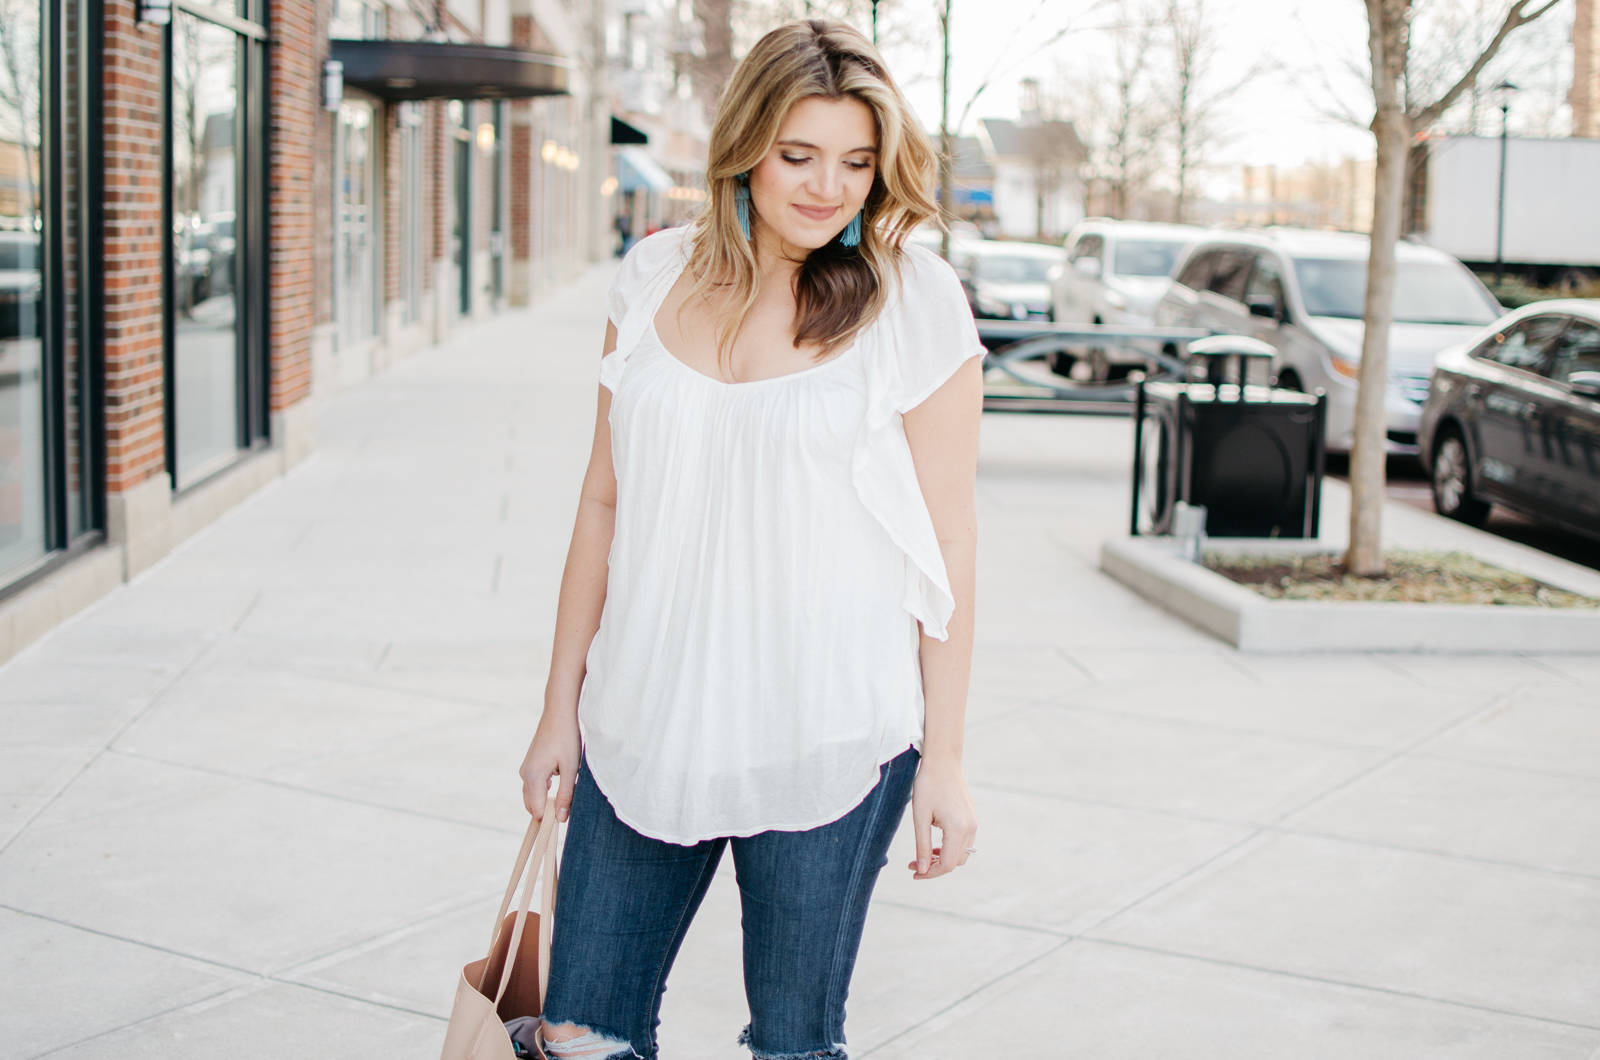 outfit ideas for spring - white ruffle top. | Click through for more spring outfit ideas or to shop the look! www.bylaurenm.com